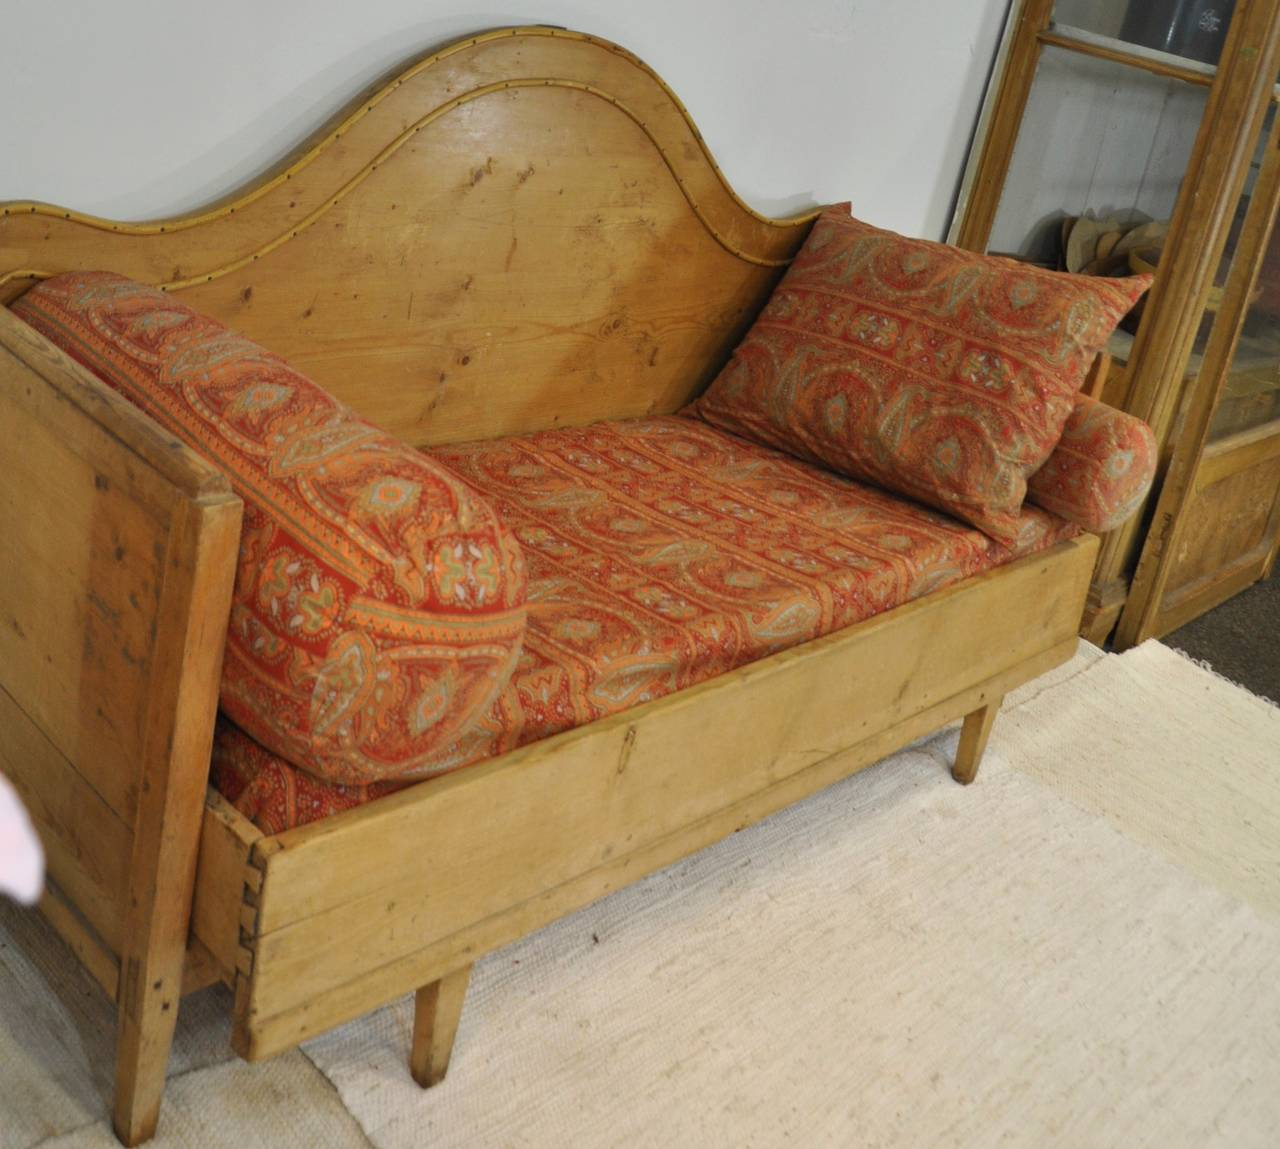 Swedish Sofa Bed Centerfieldbar TheSofa